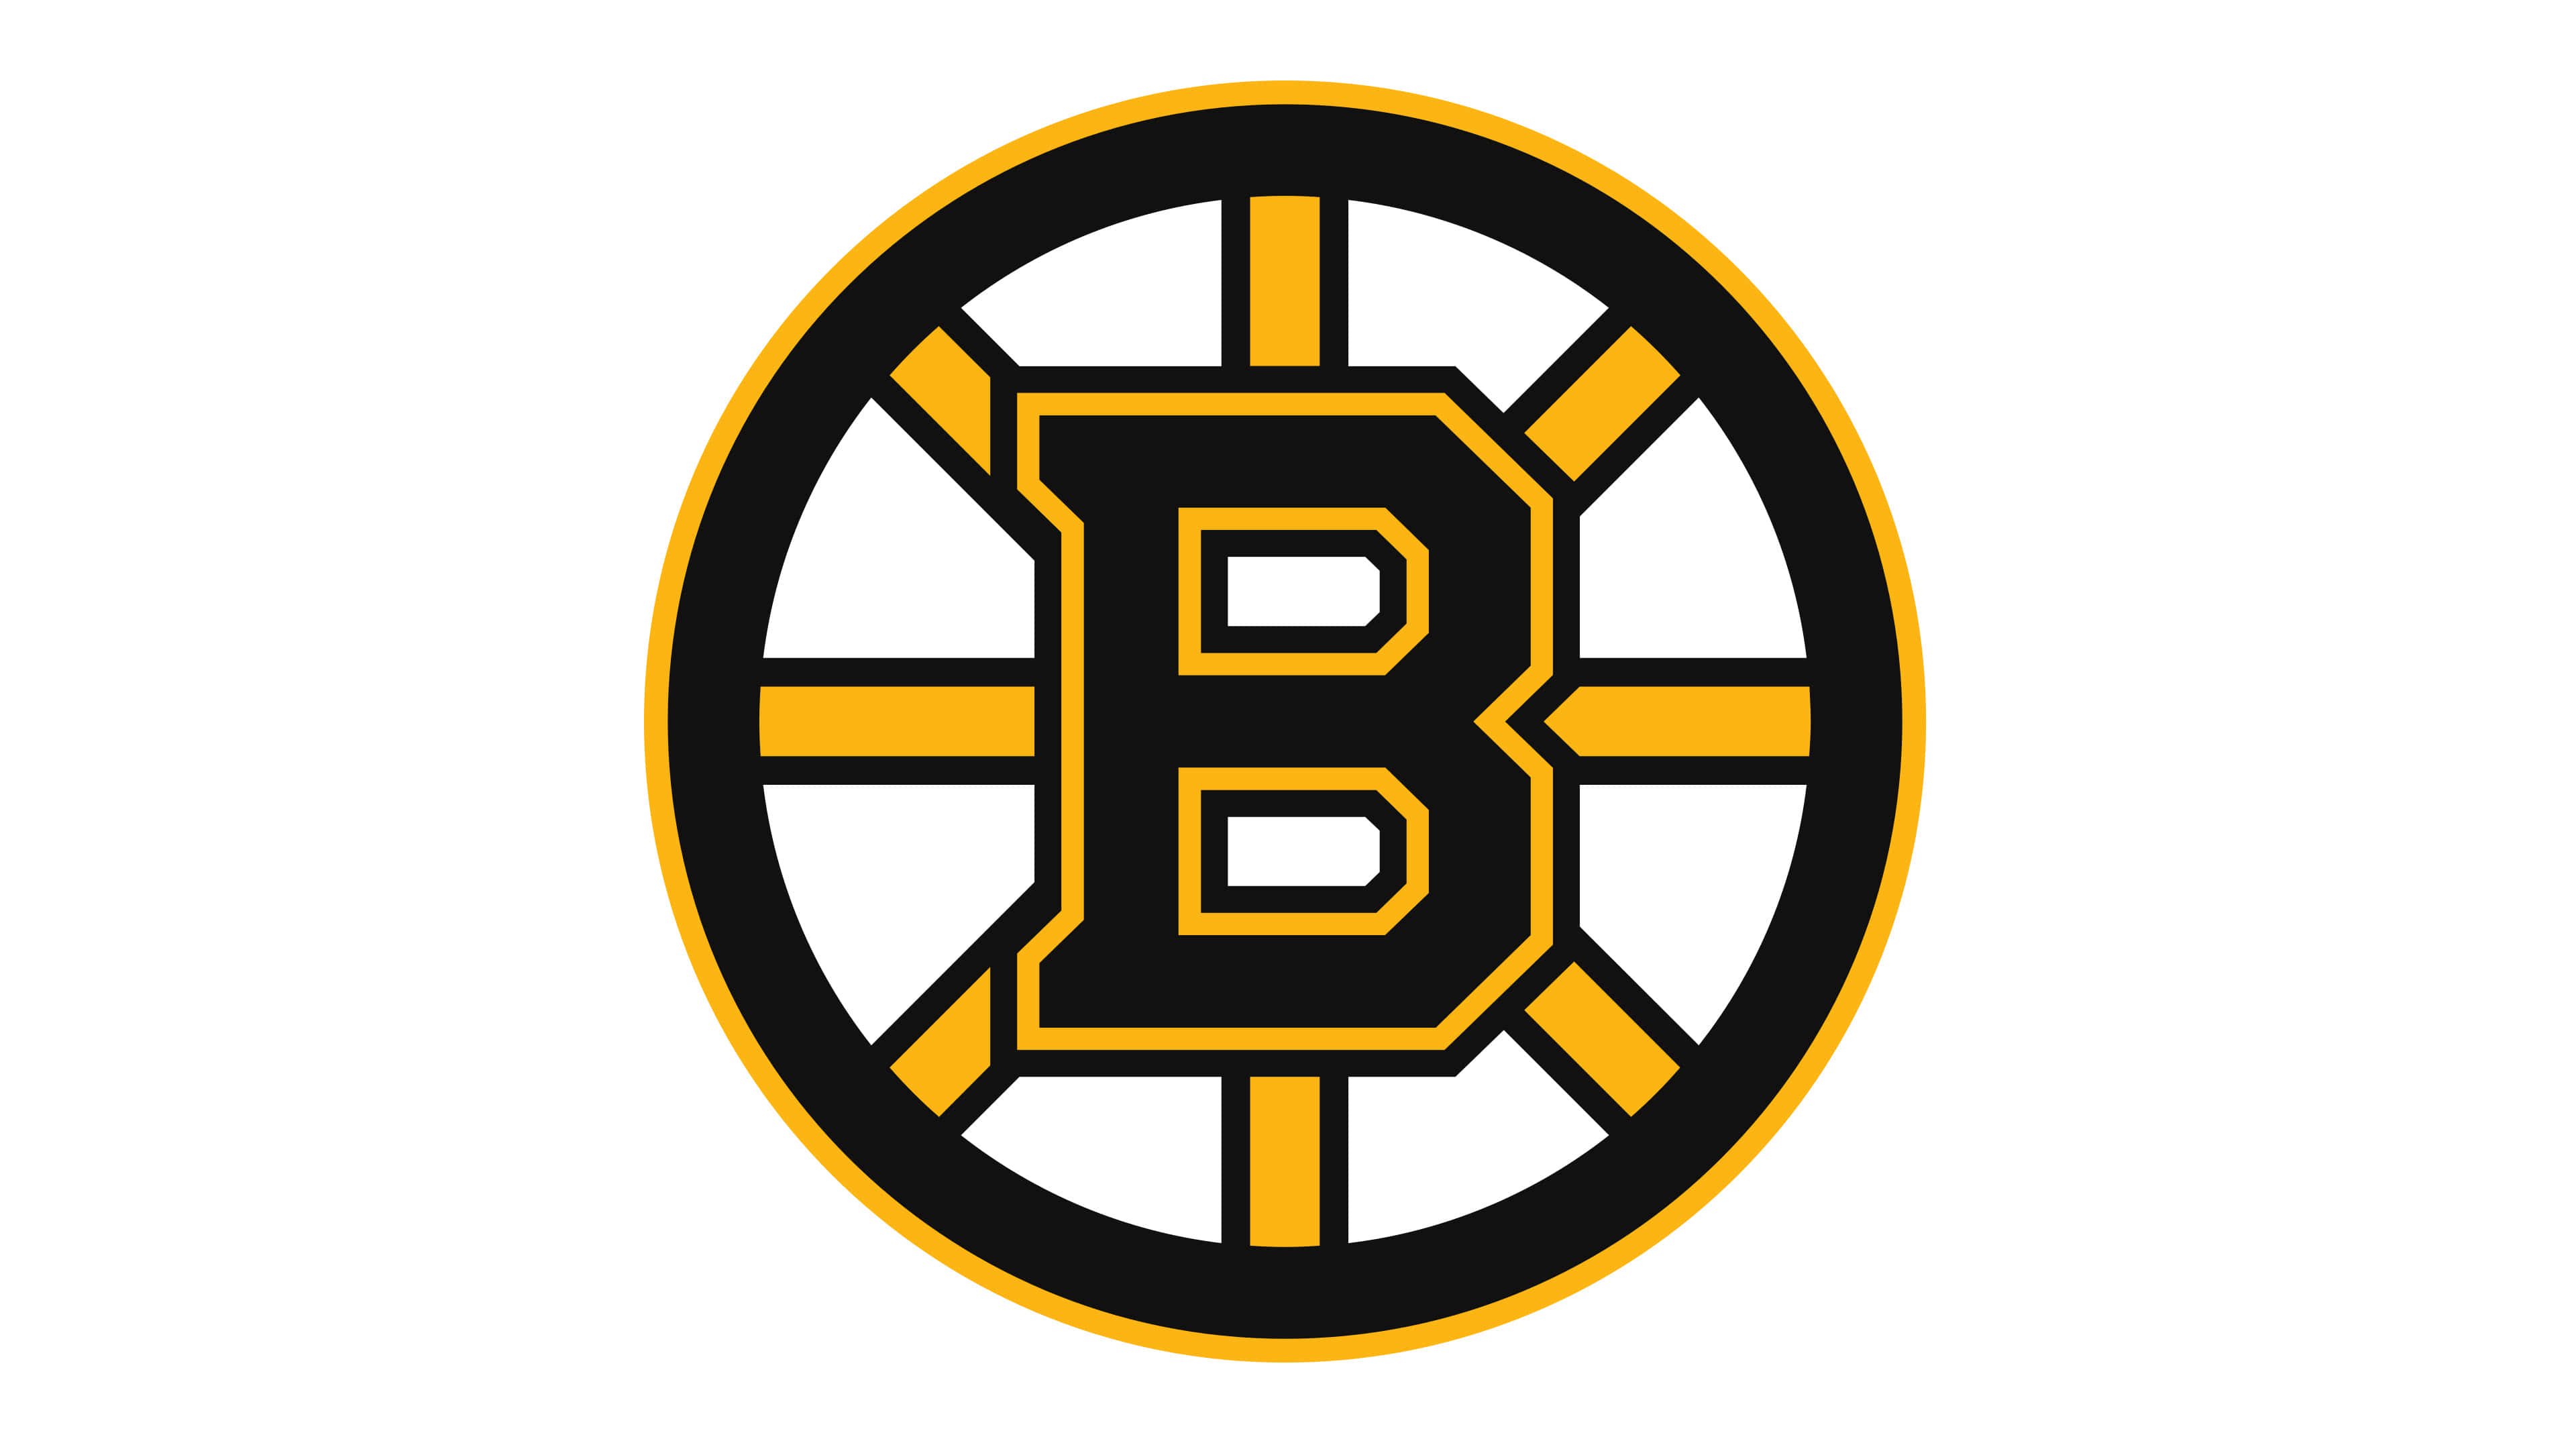 boston bruins nhl logo uhd 4k wallpaper